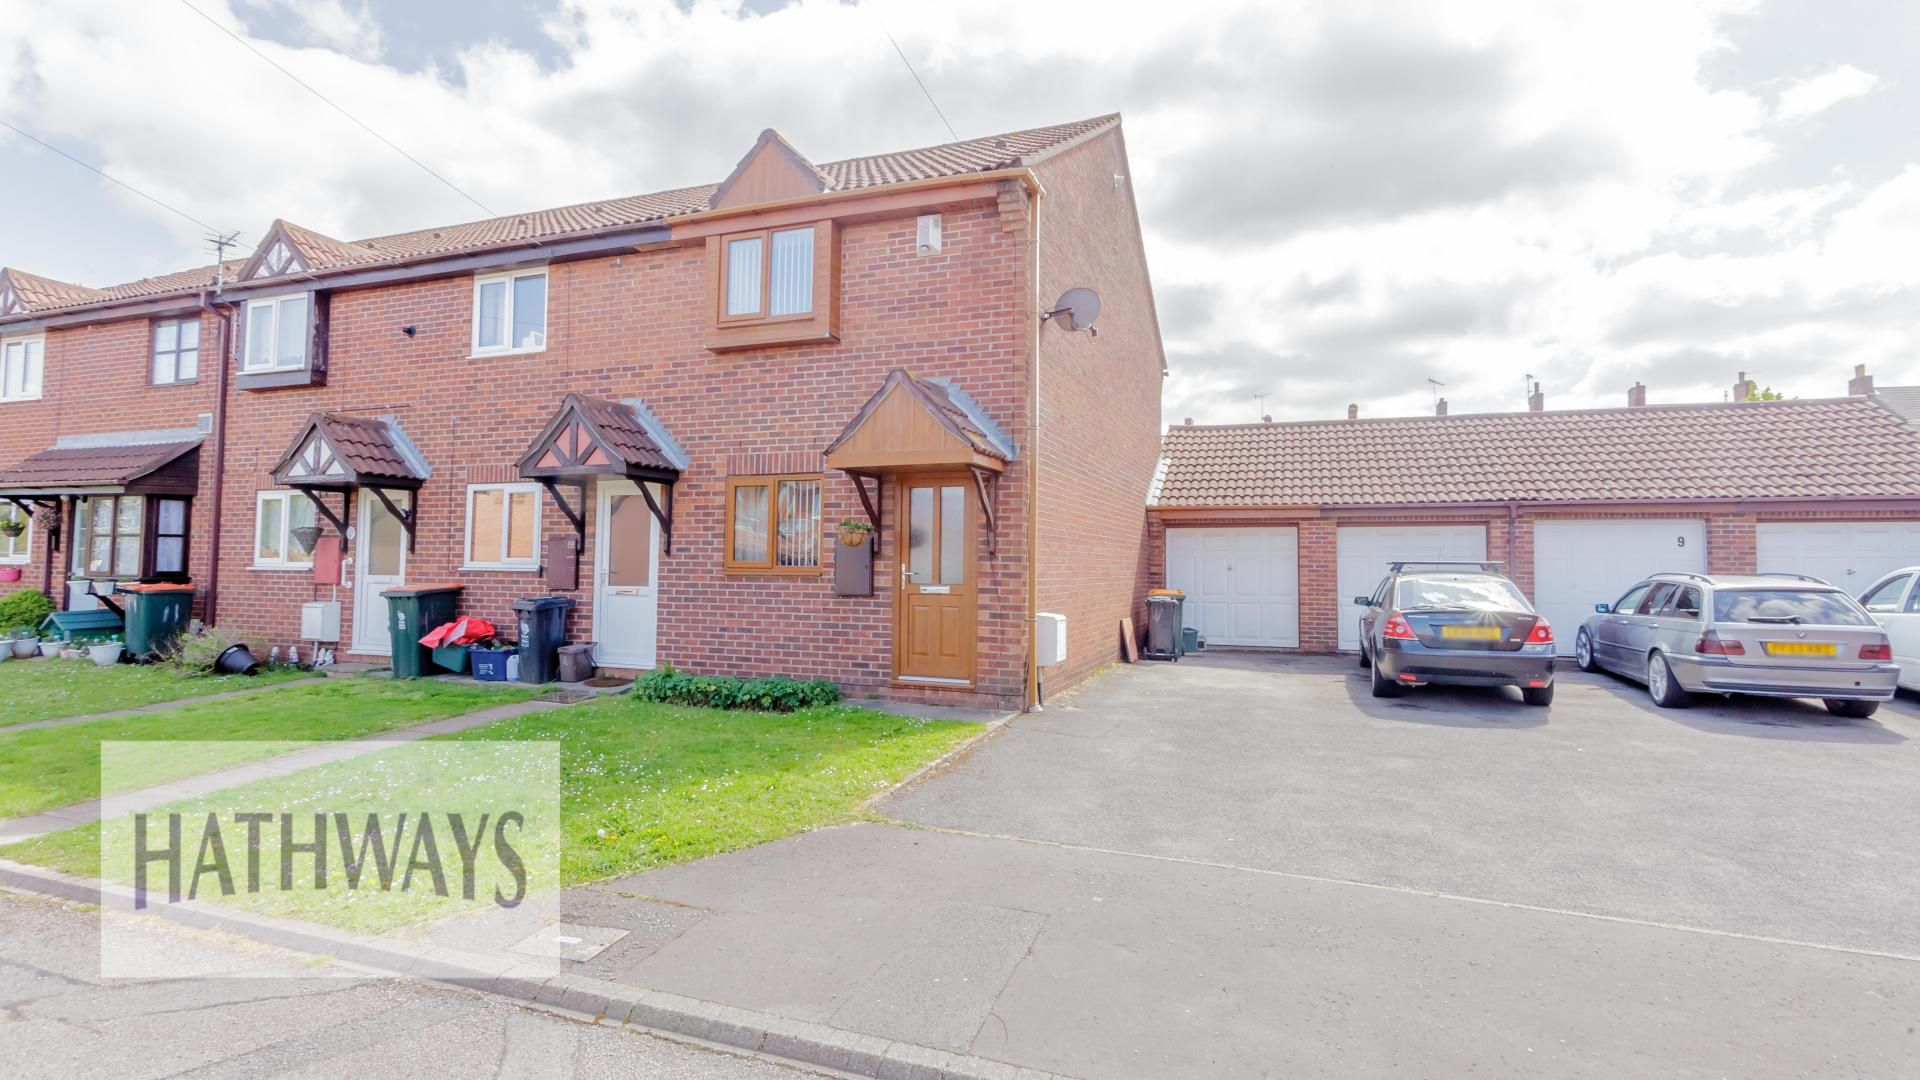 2 bed house for sale in Highbank, NP19